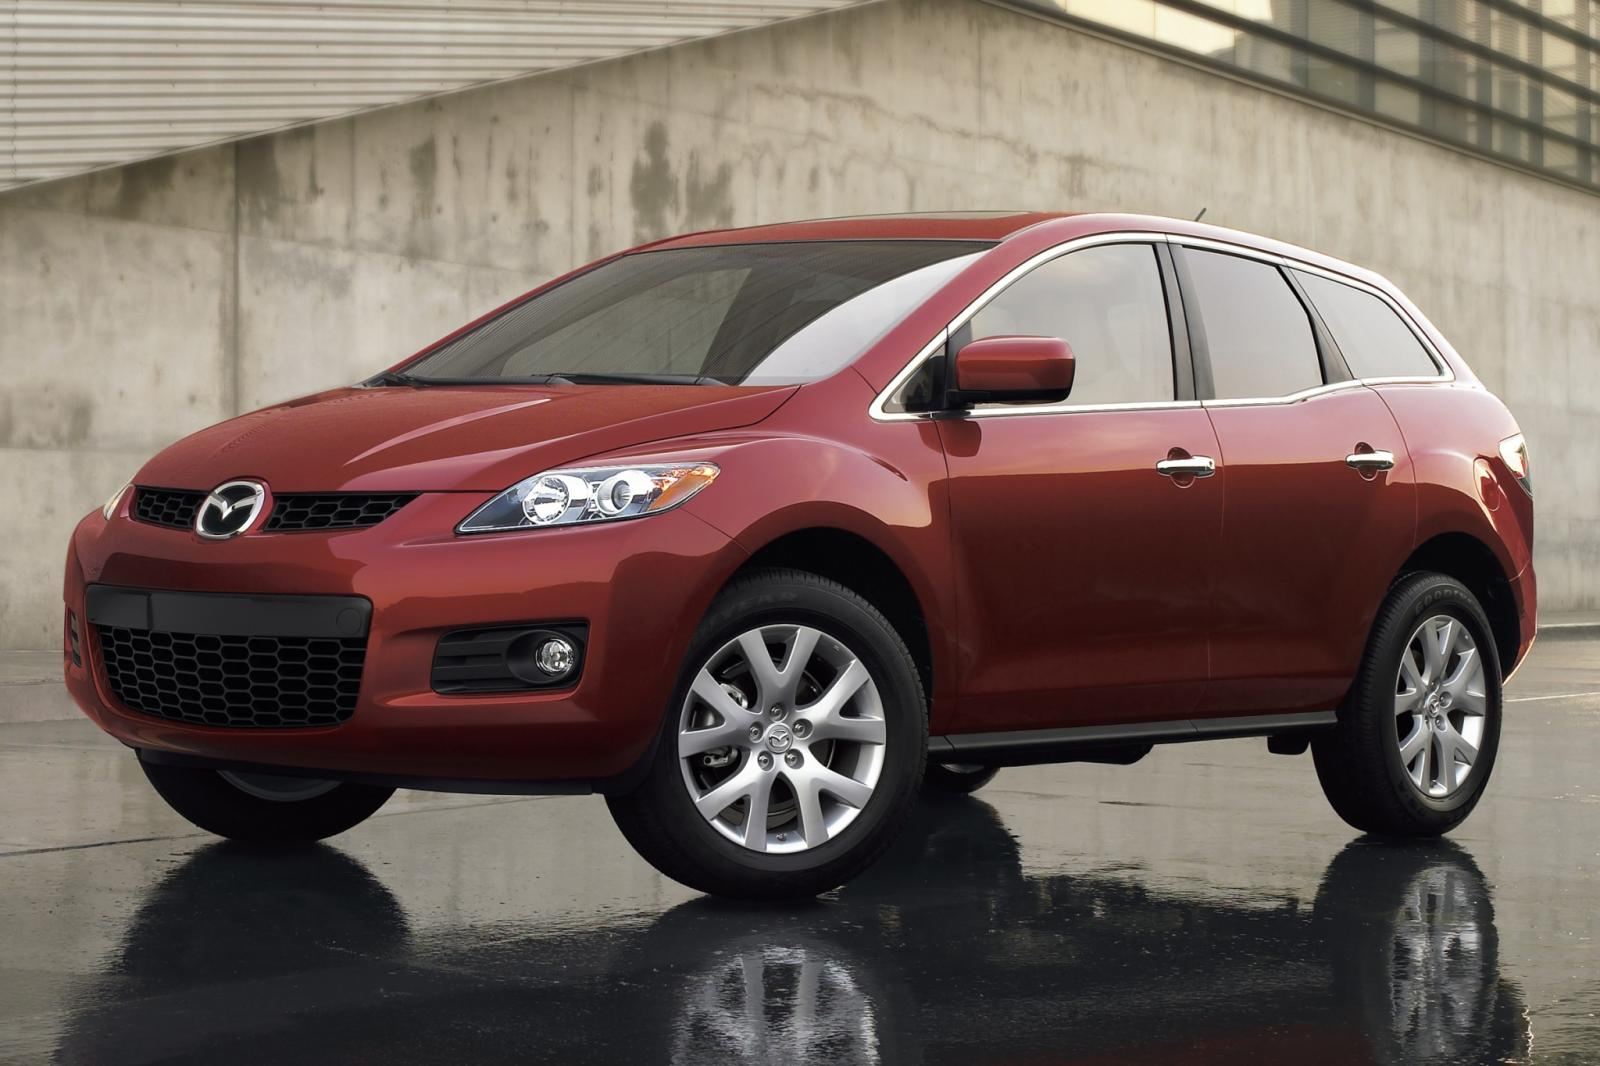 2008 mazda cx 7 information and photos zombiedrive. Black Bedroom Furniture Sets. Home Design Ideas